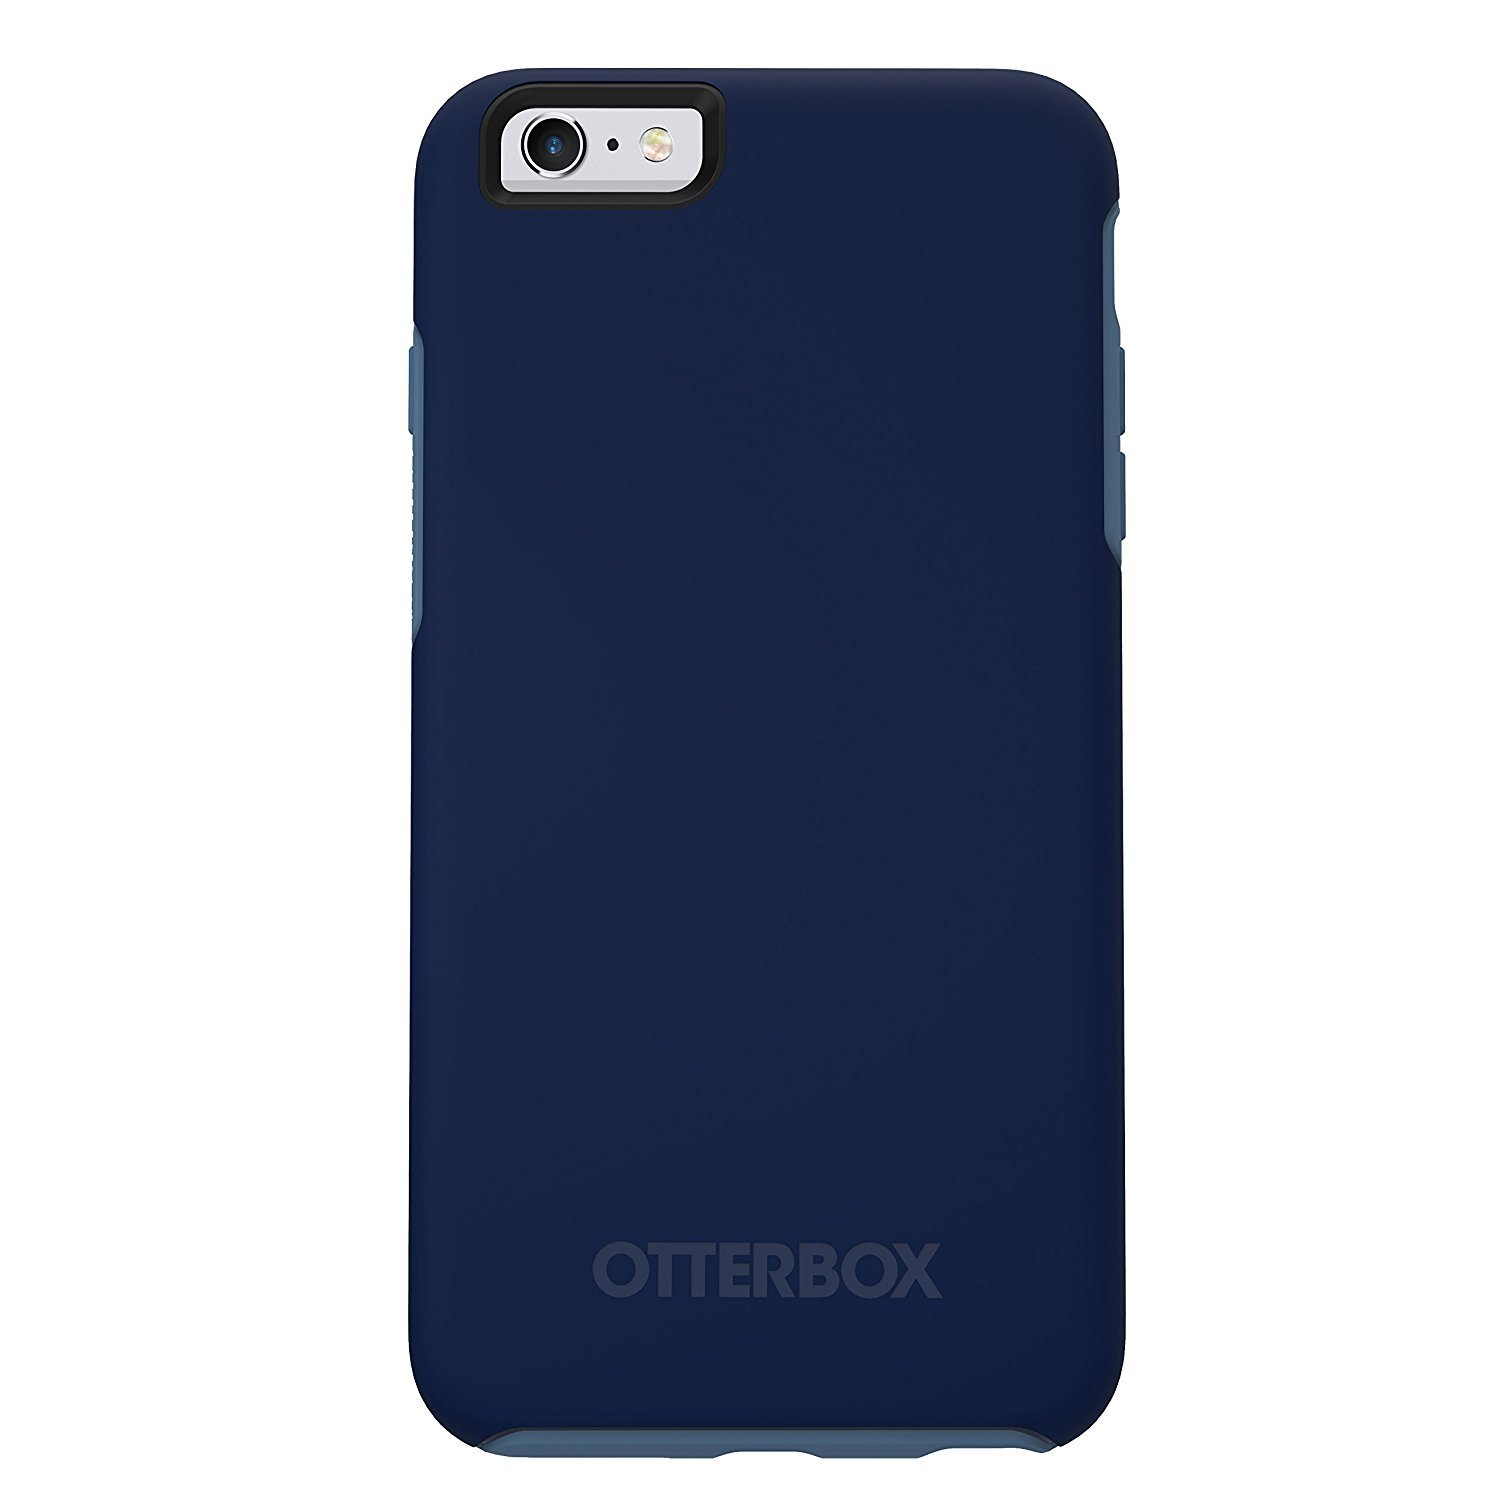 OtterBox Ultra Slim Symmetry Series Case for Apple iPhone 6 Plus / 6S Plus 5.5in - Blueberry (Admiral Blue/Dark Deep Water Blue) (Renewed)